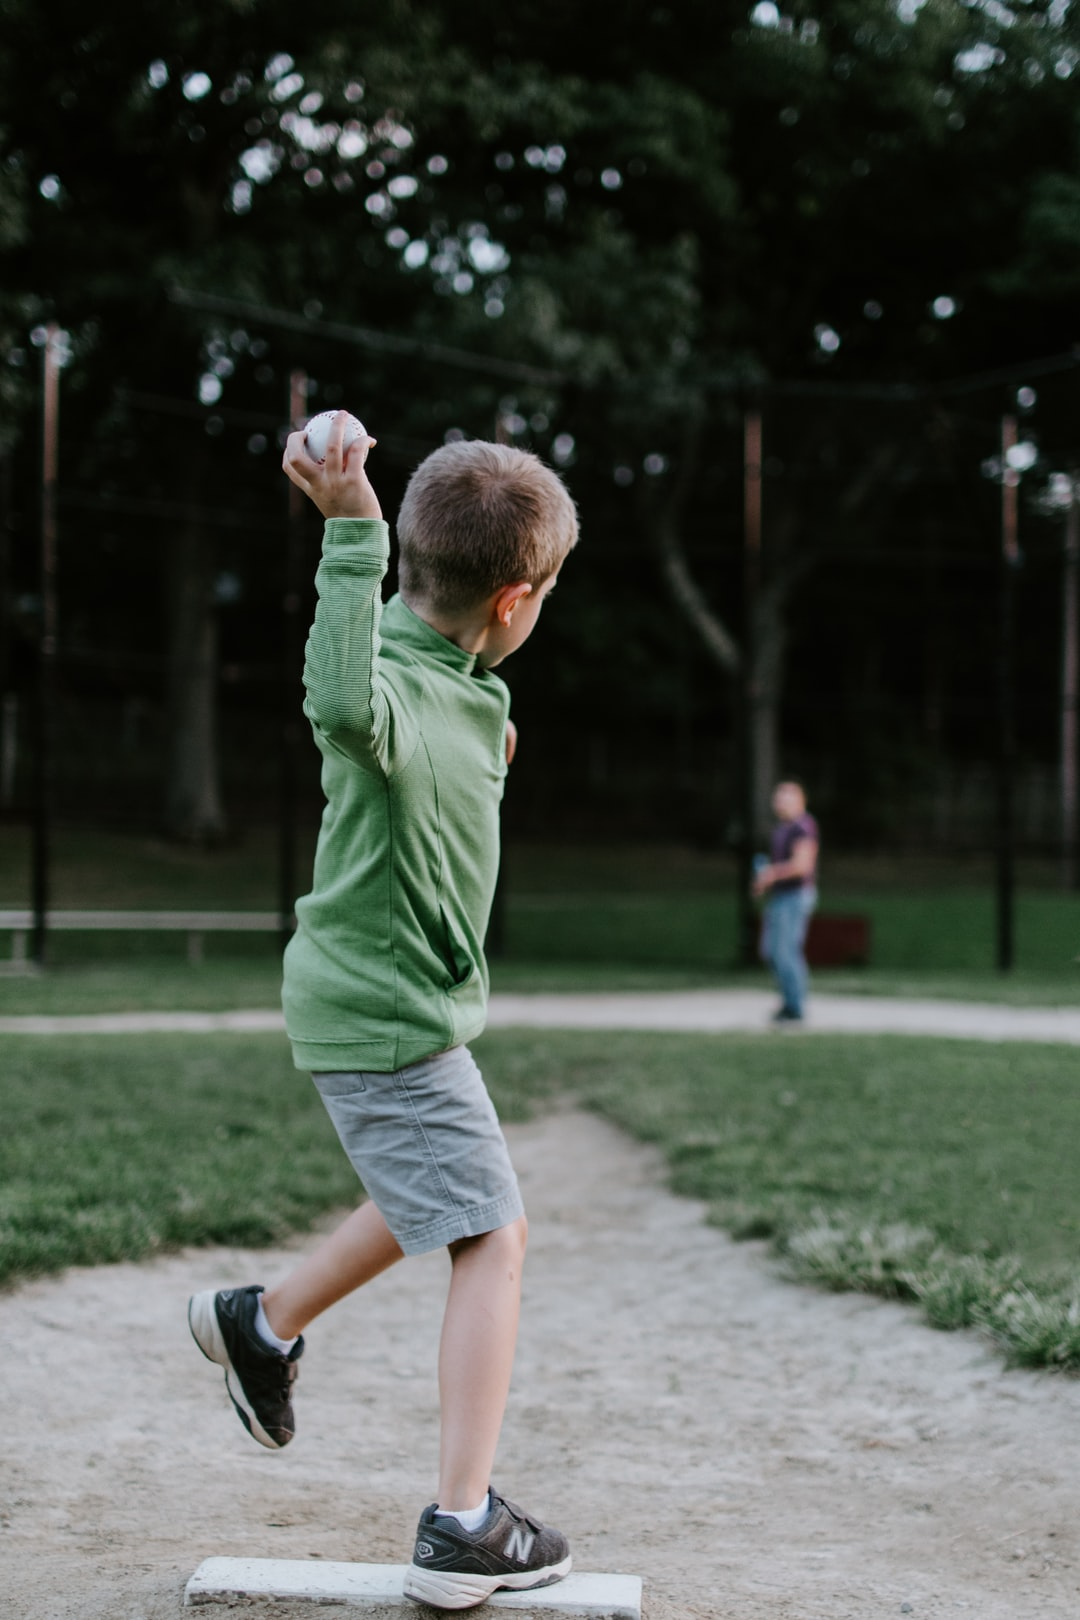 Son and Dad playing baseball in the park